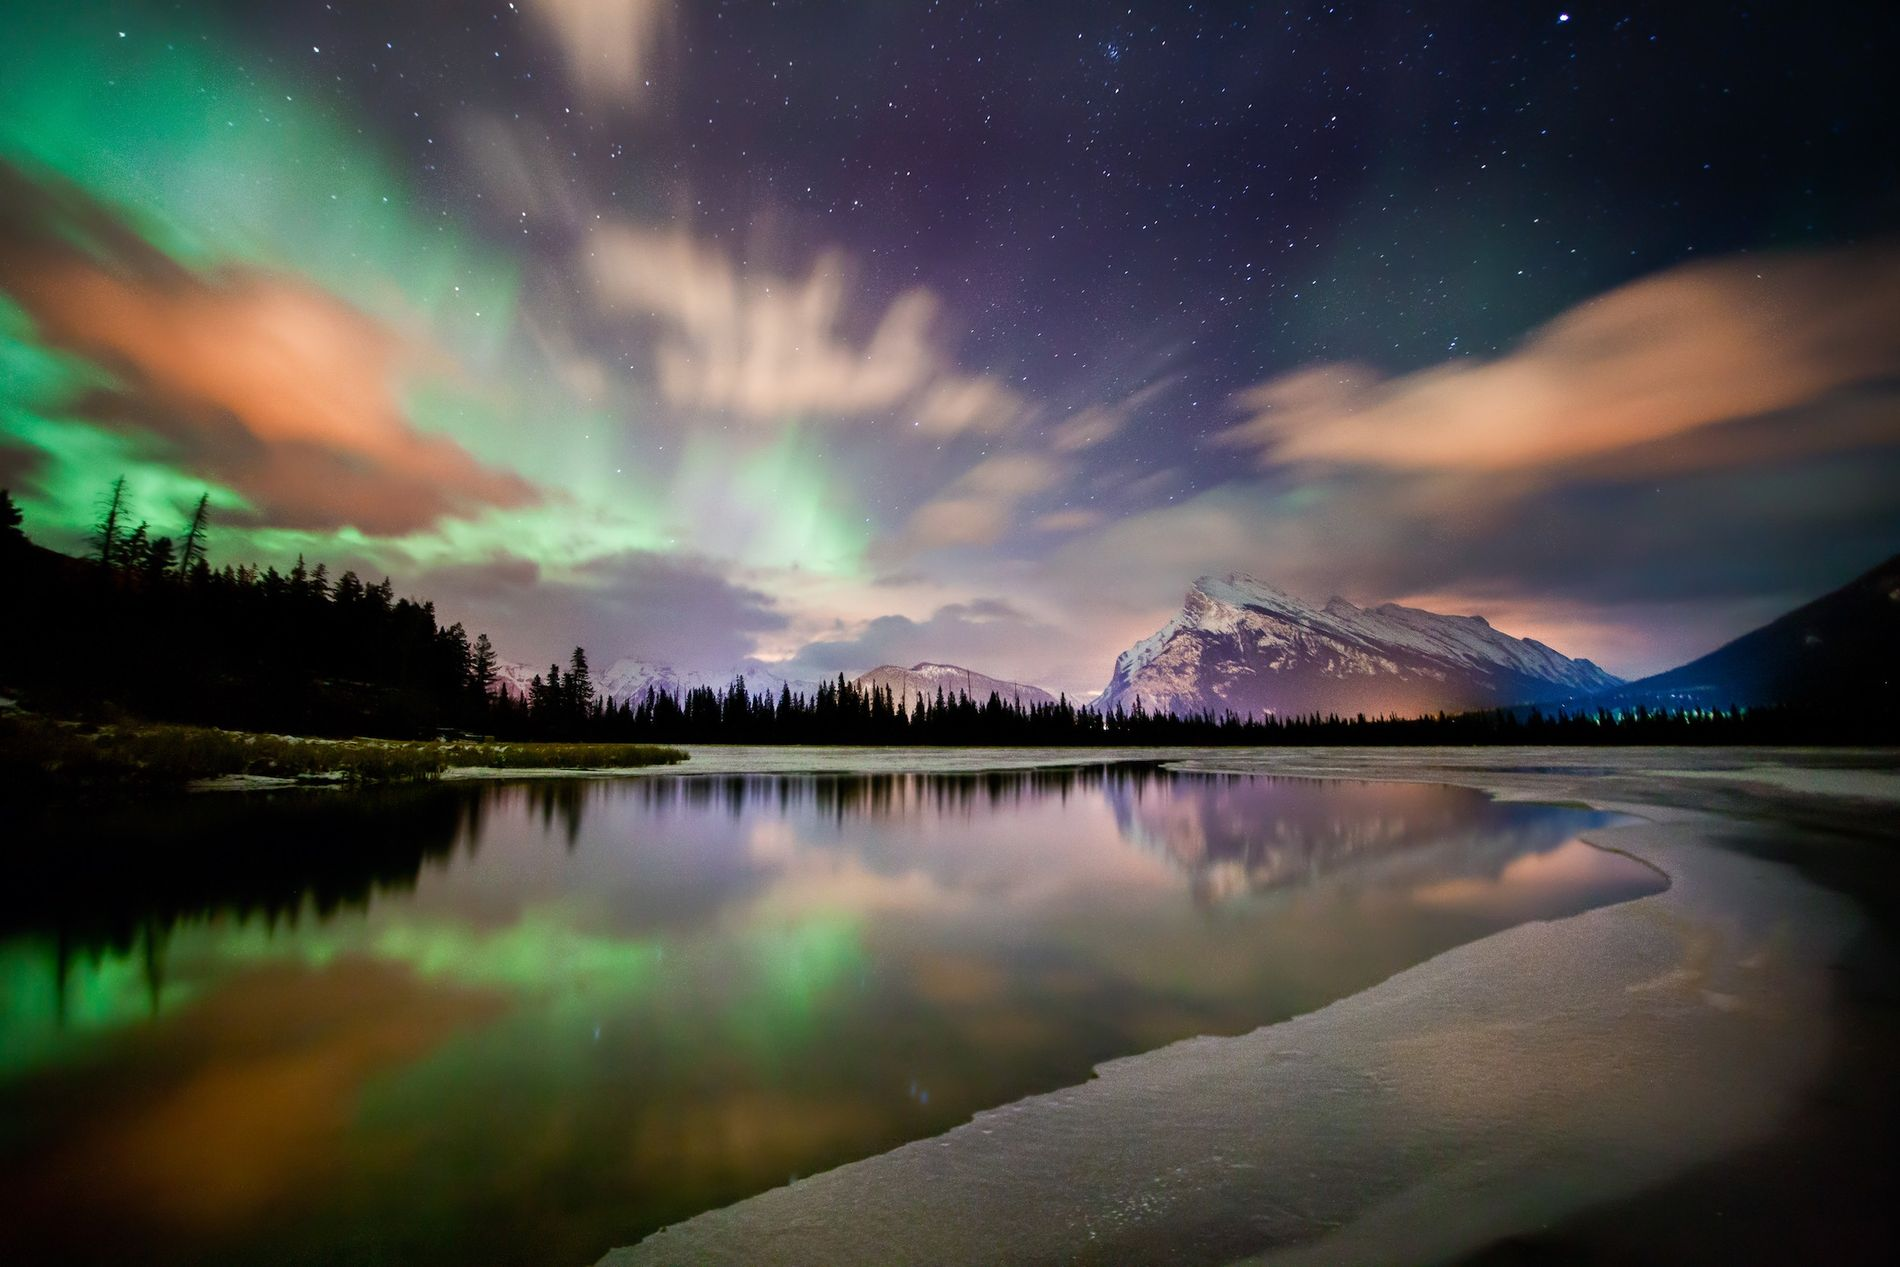 One of the best times for stargazing at Lake Louise is in winter.